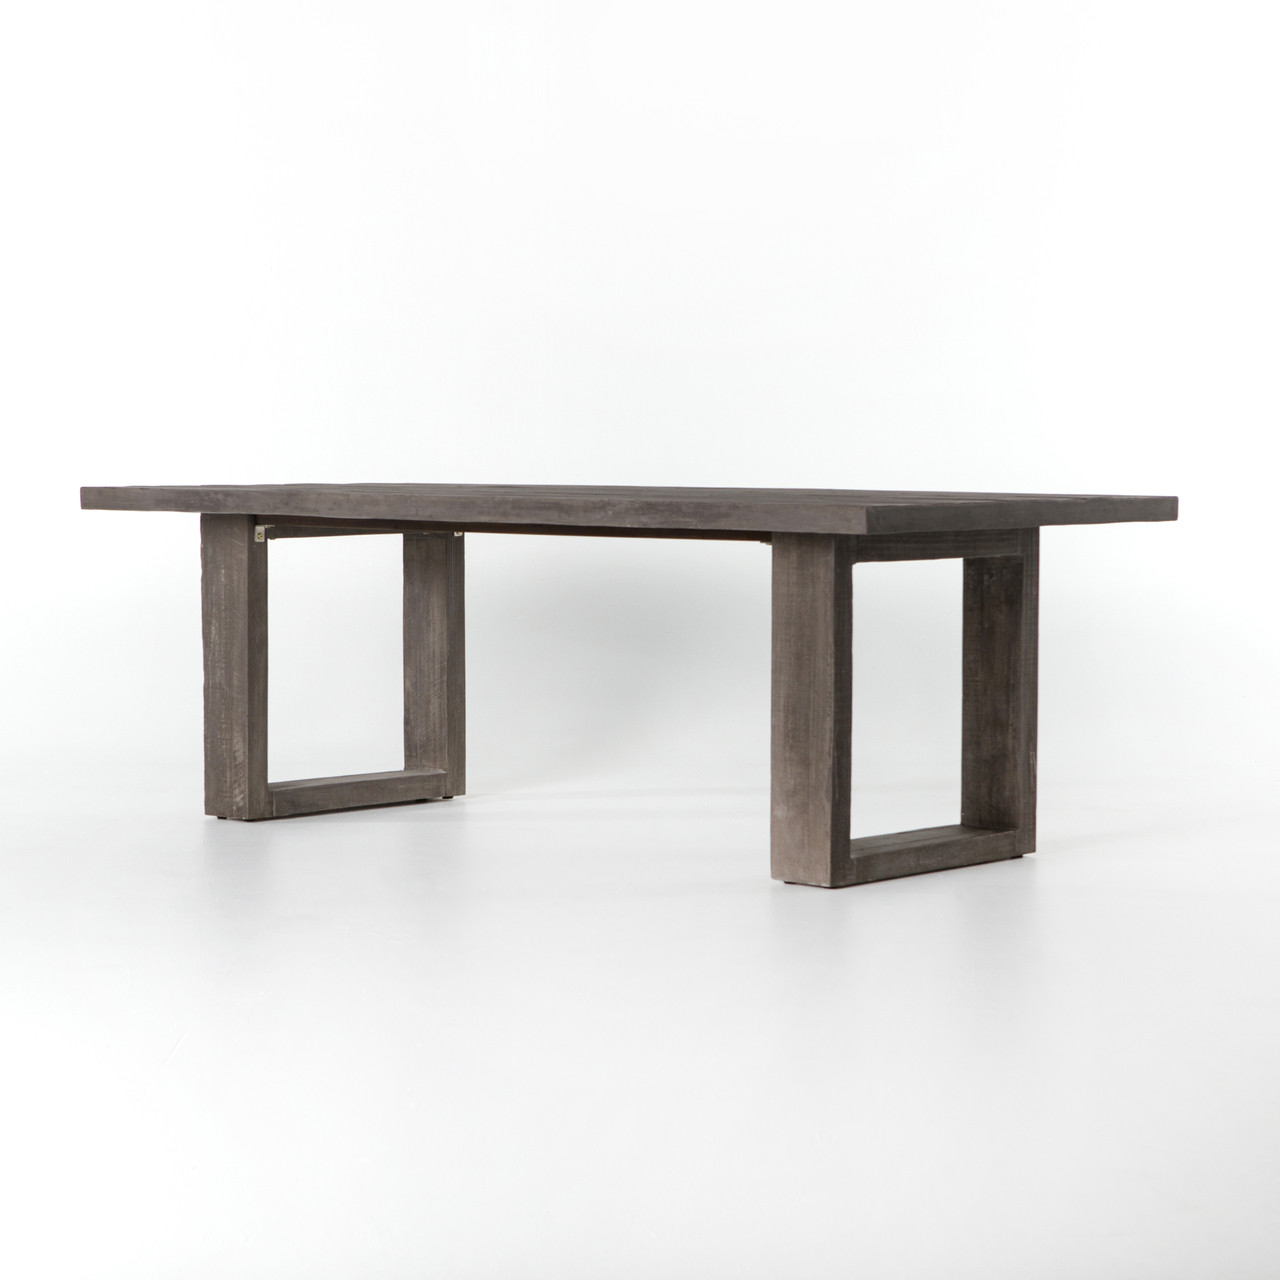 Faux Bois Concrete Outdoor Dining Table